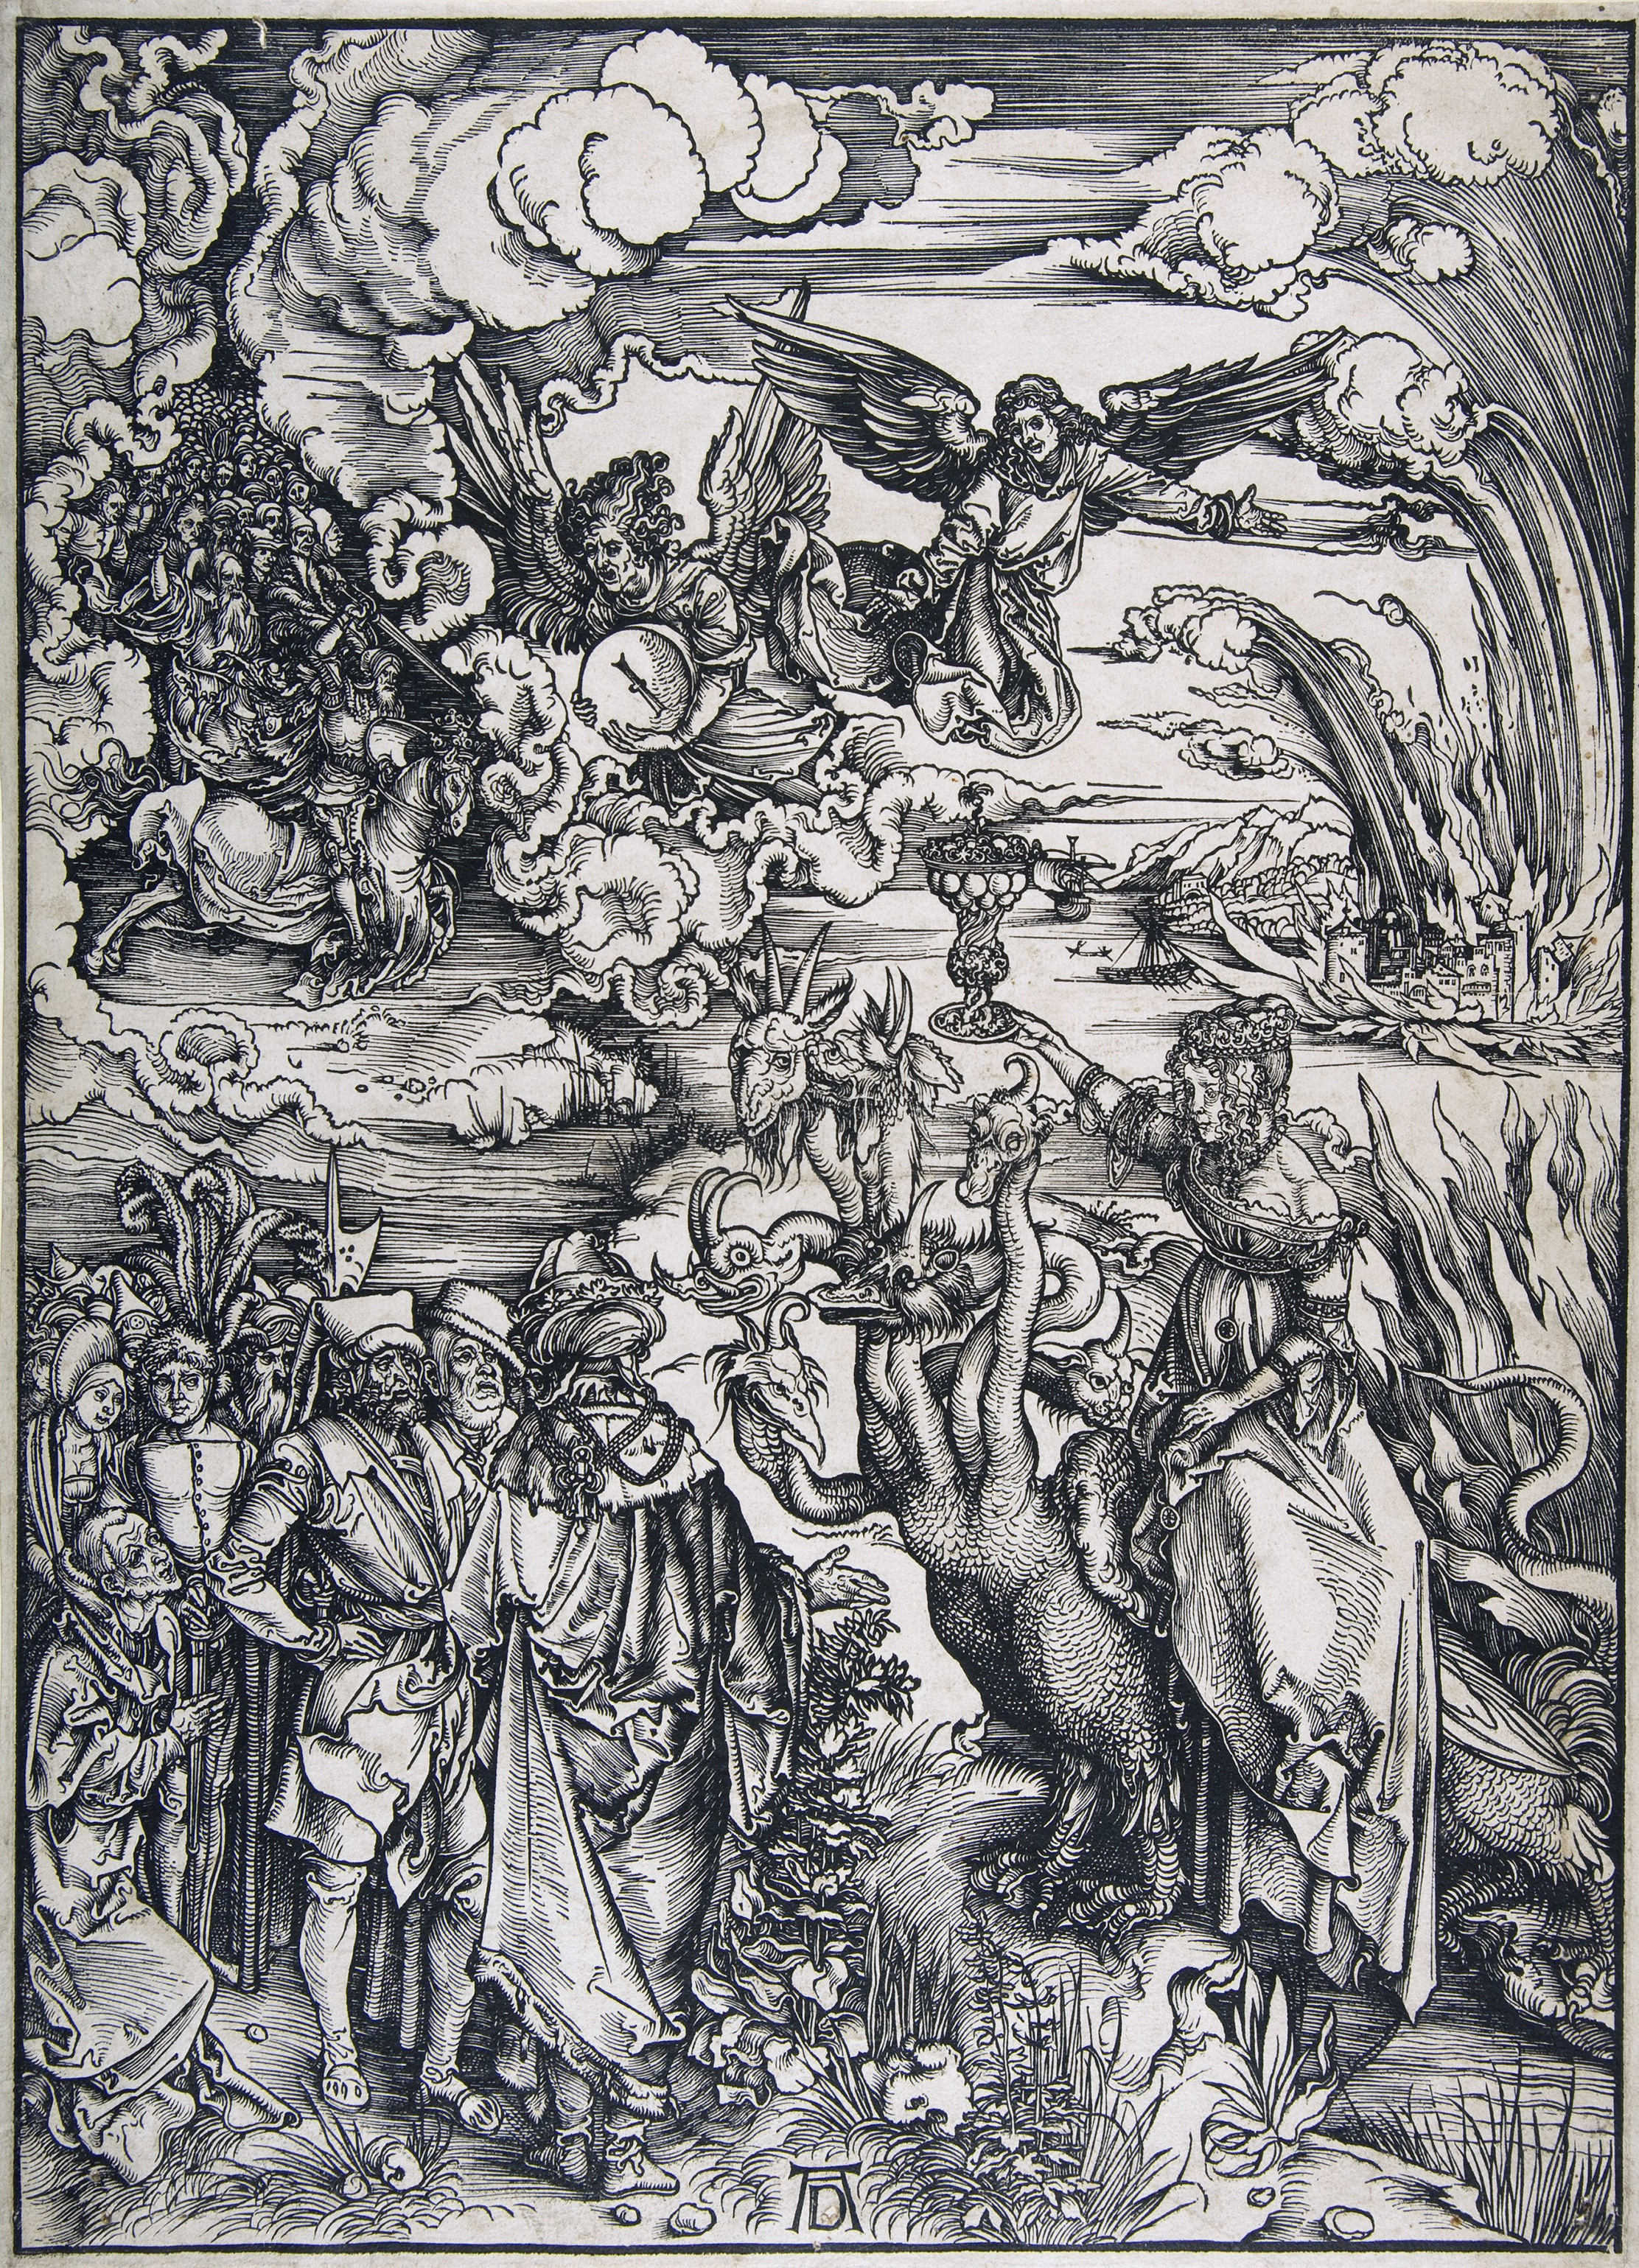 The Apocalypse — The Whore of Babylon, 1498 — Albrecht Dürer,